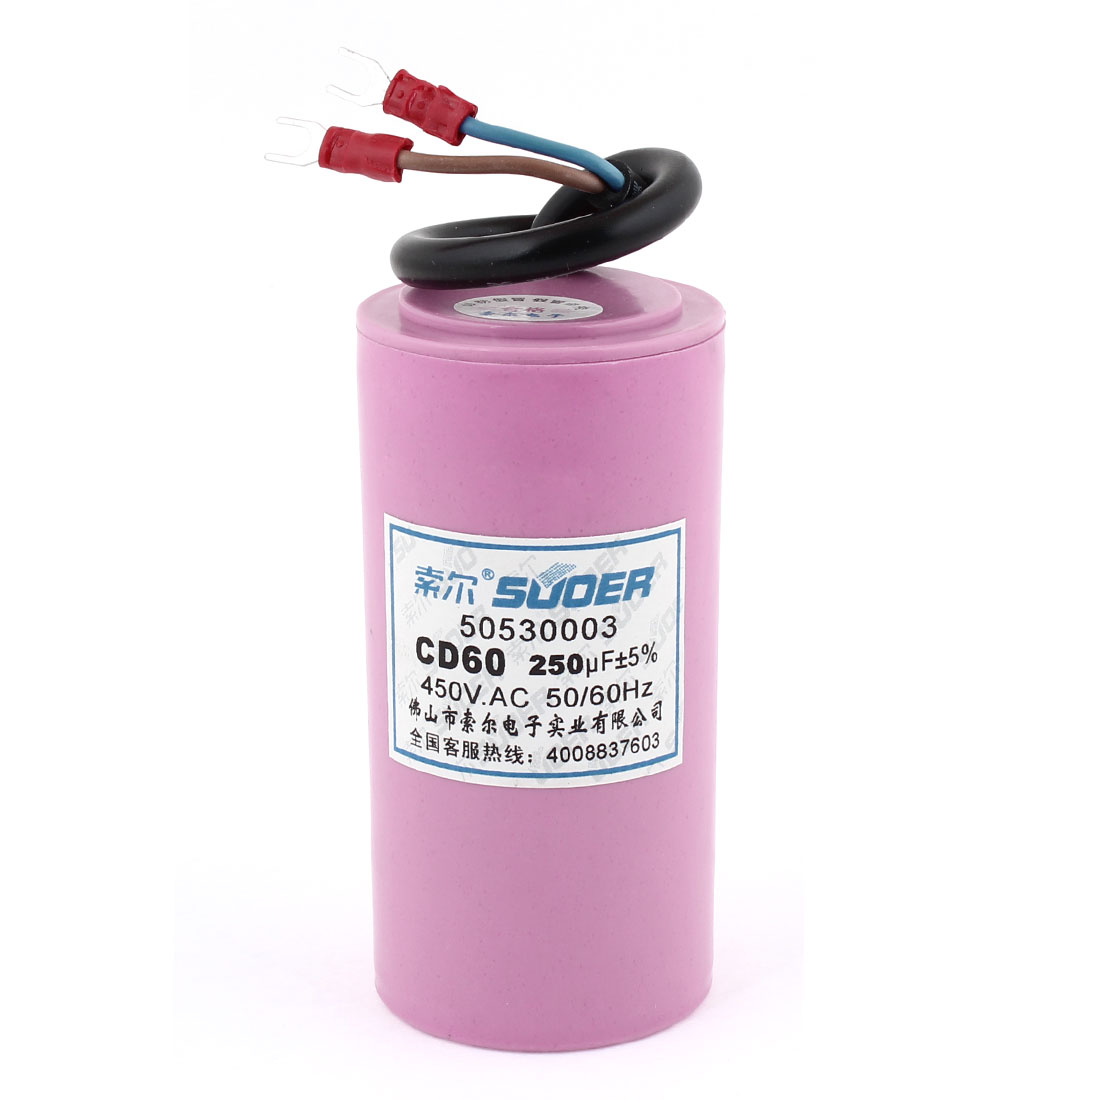 AC 450V 50/60Hz 250uF Washing Machine Polypropylene Film Capacitor